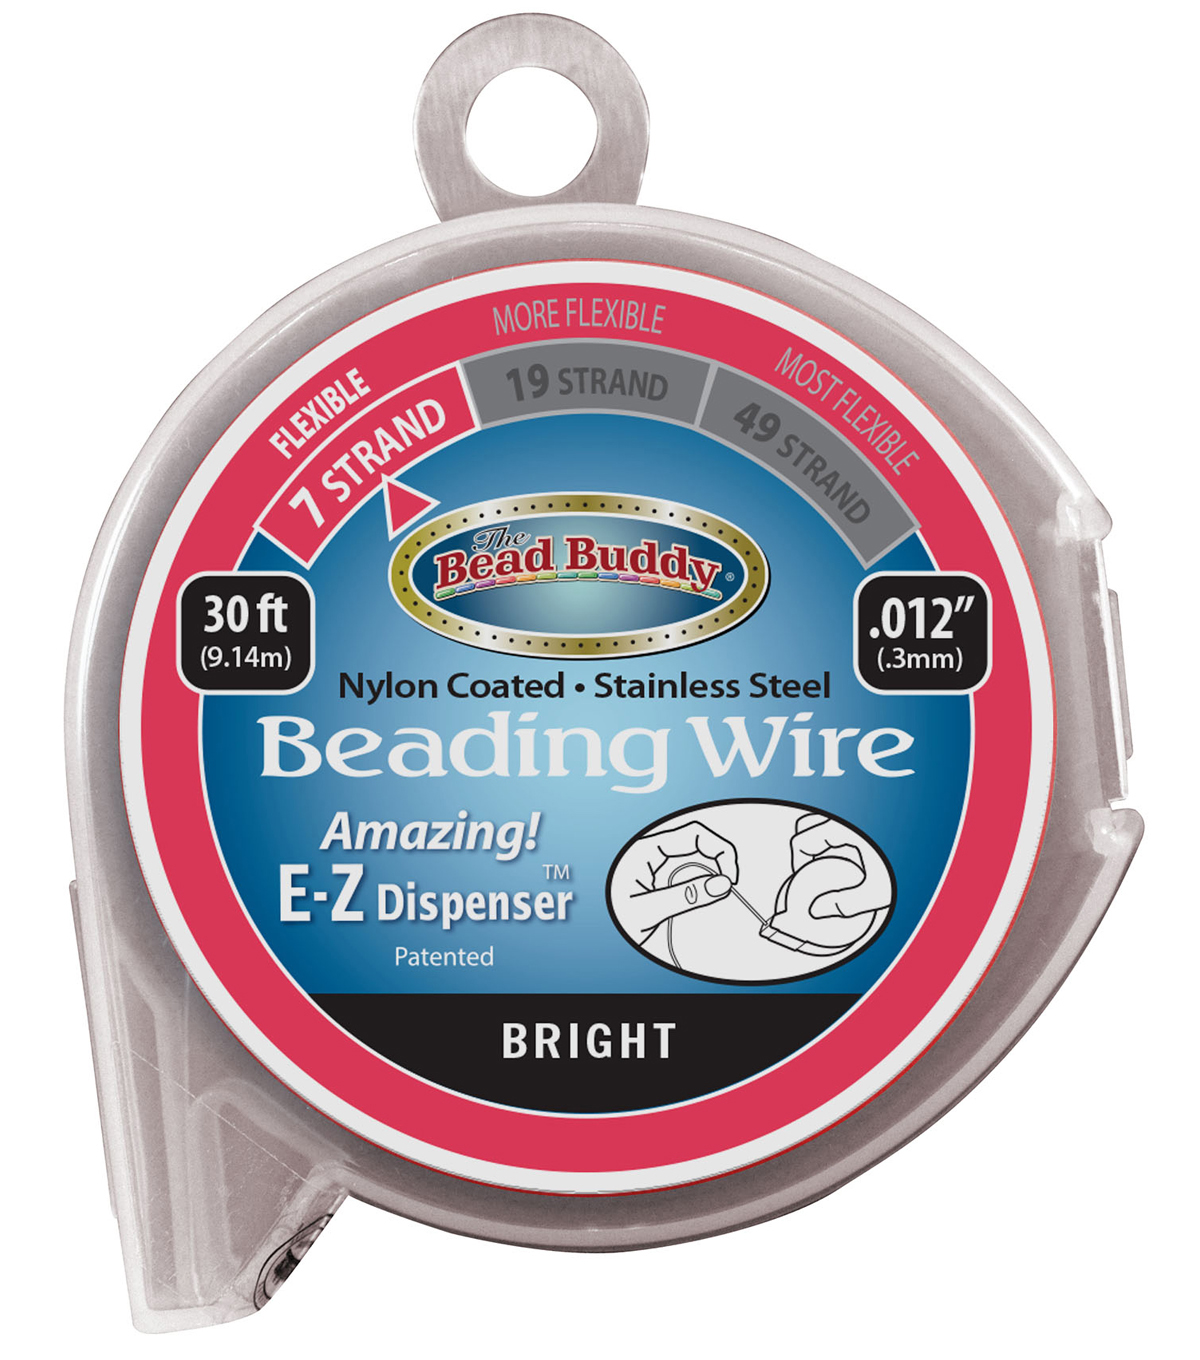 7 Strand 012 Beading Wire